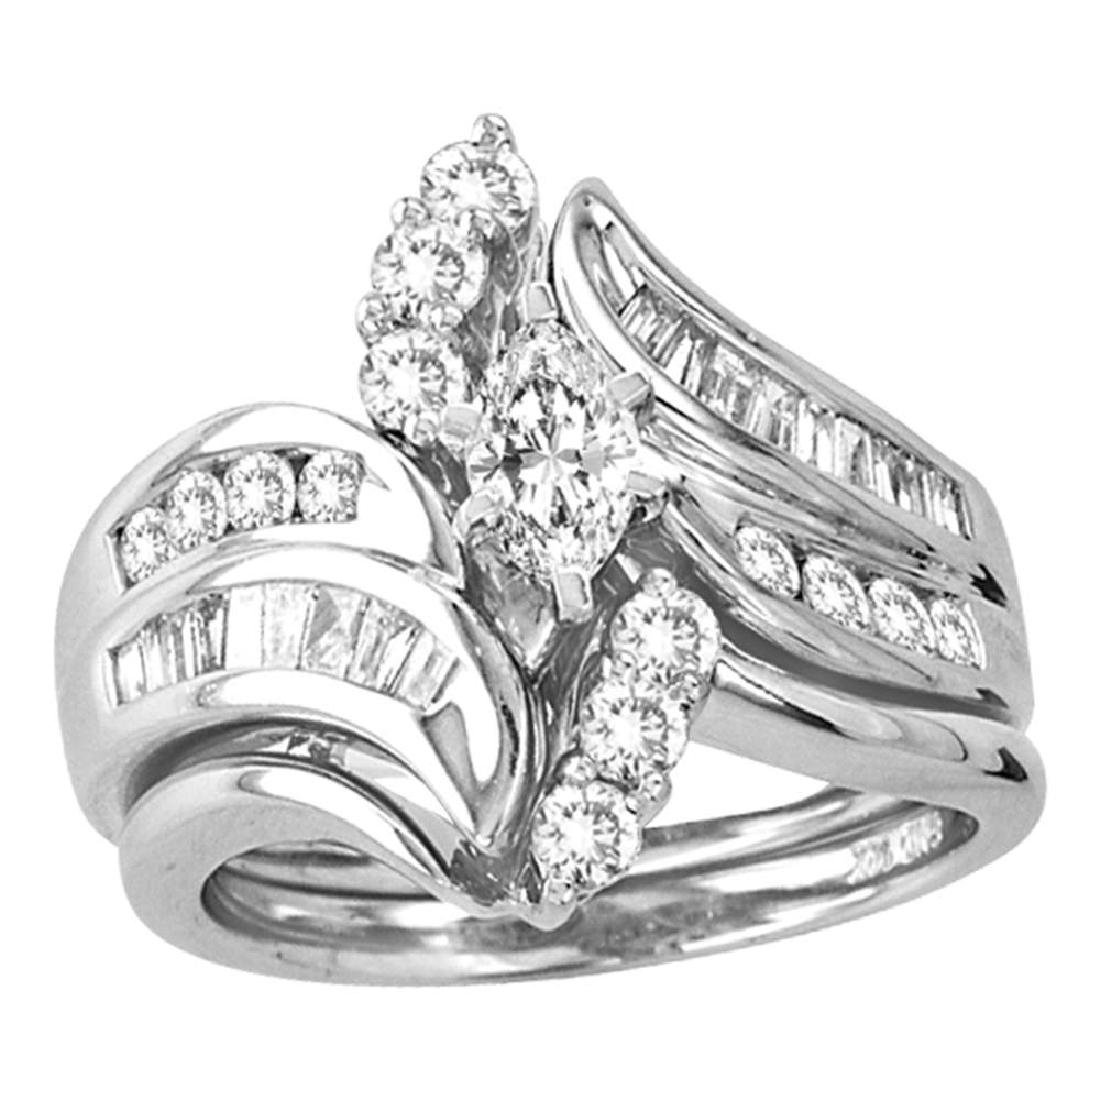 1.49 CTW Marquise Diamond Bridal Engagement Ring 14KT